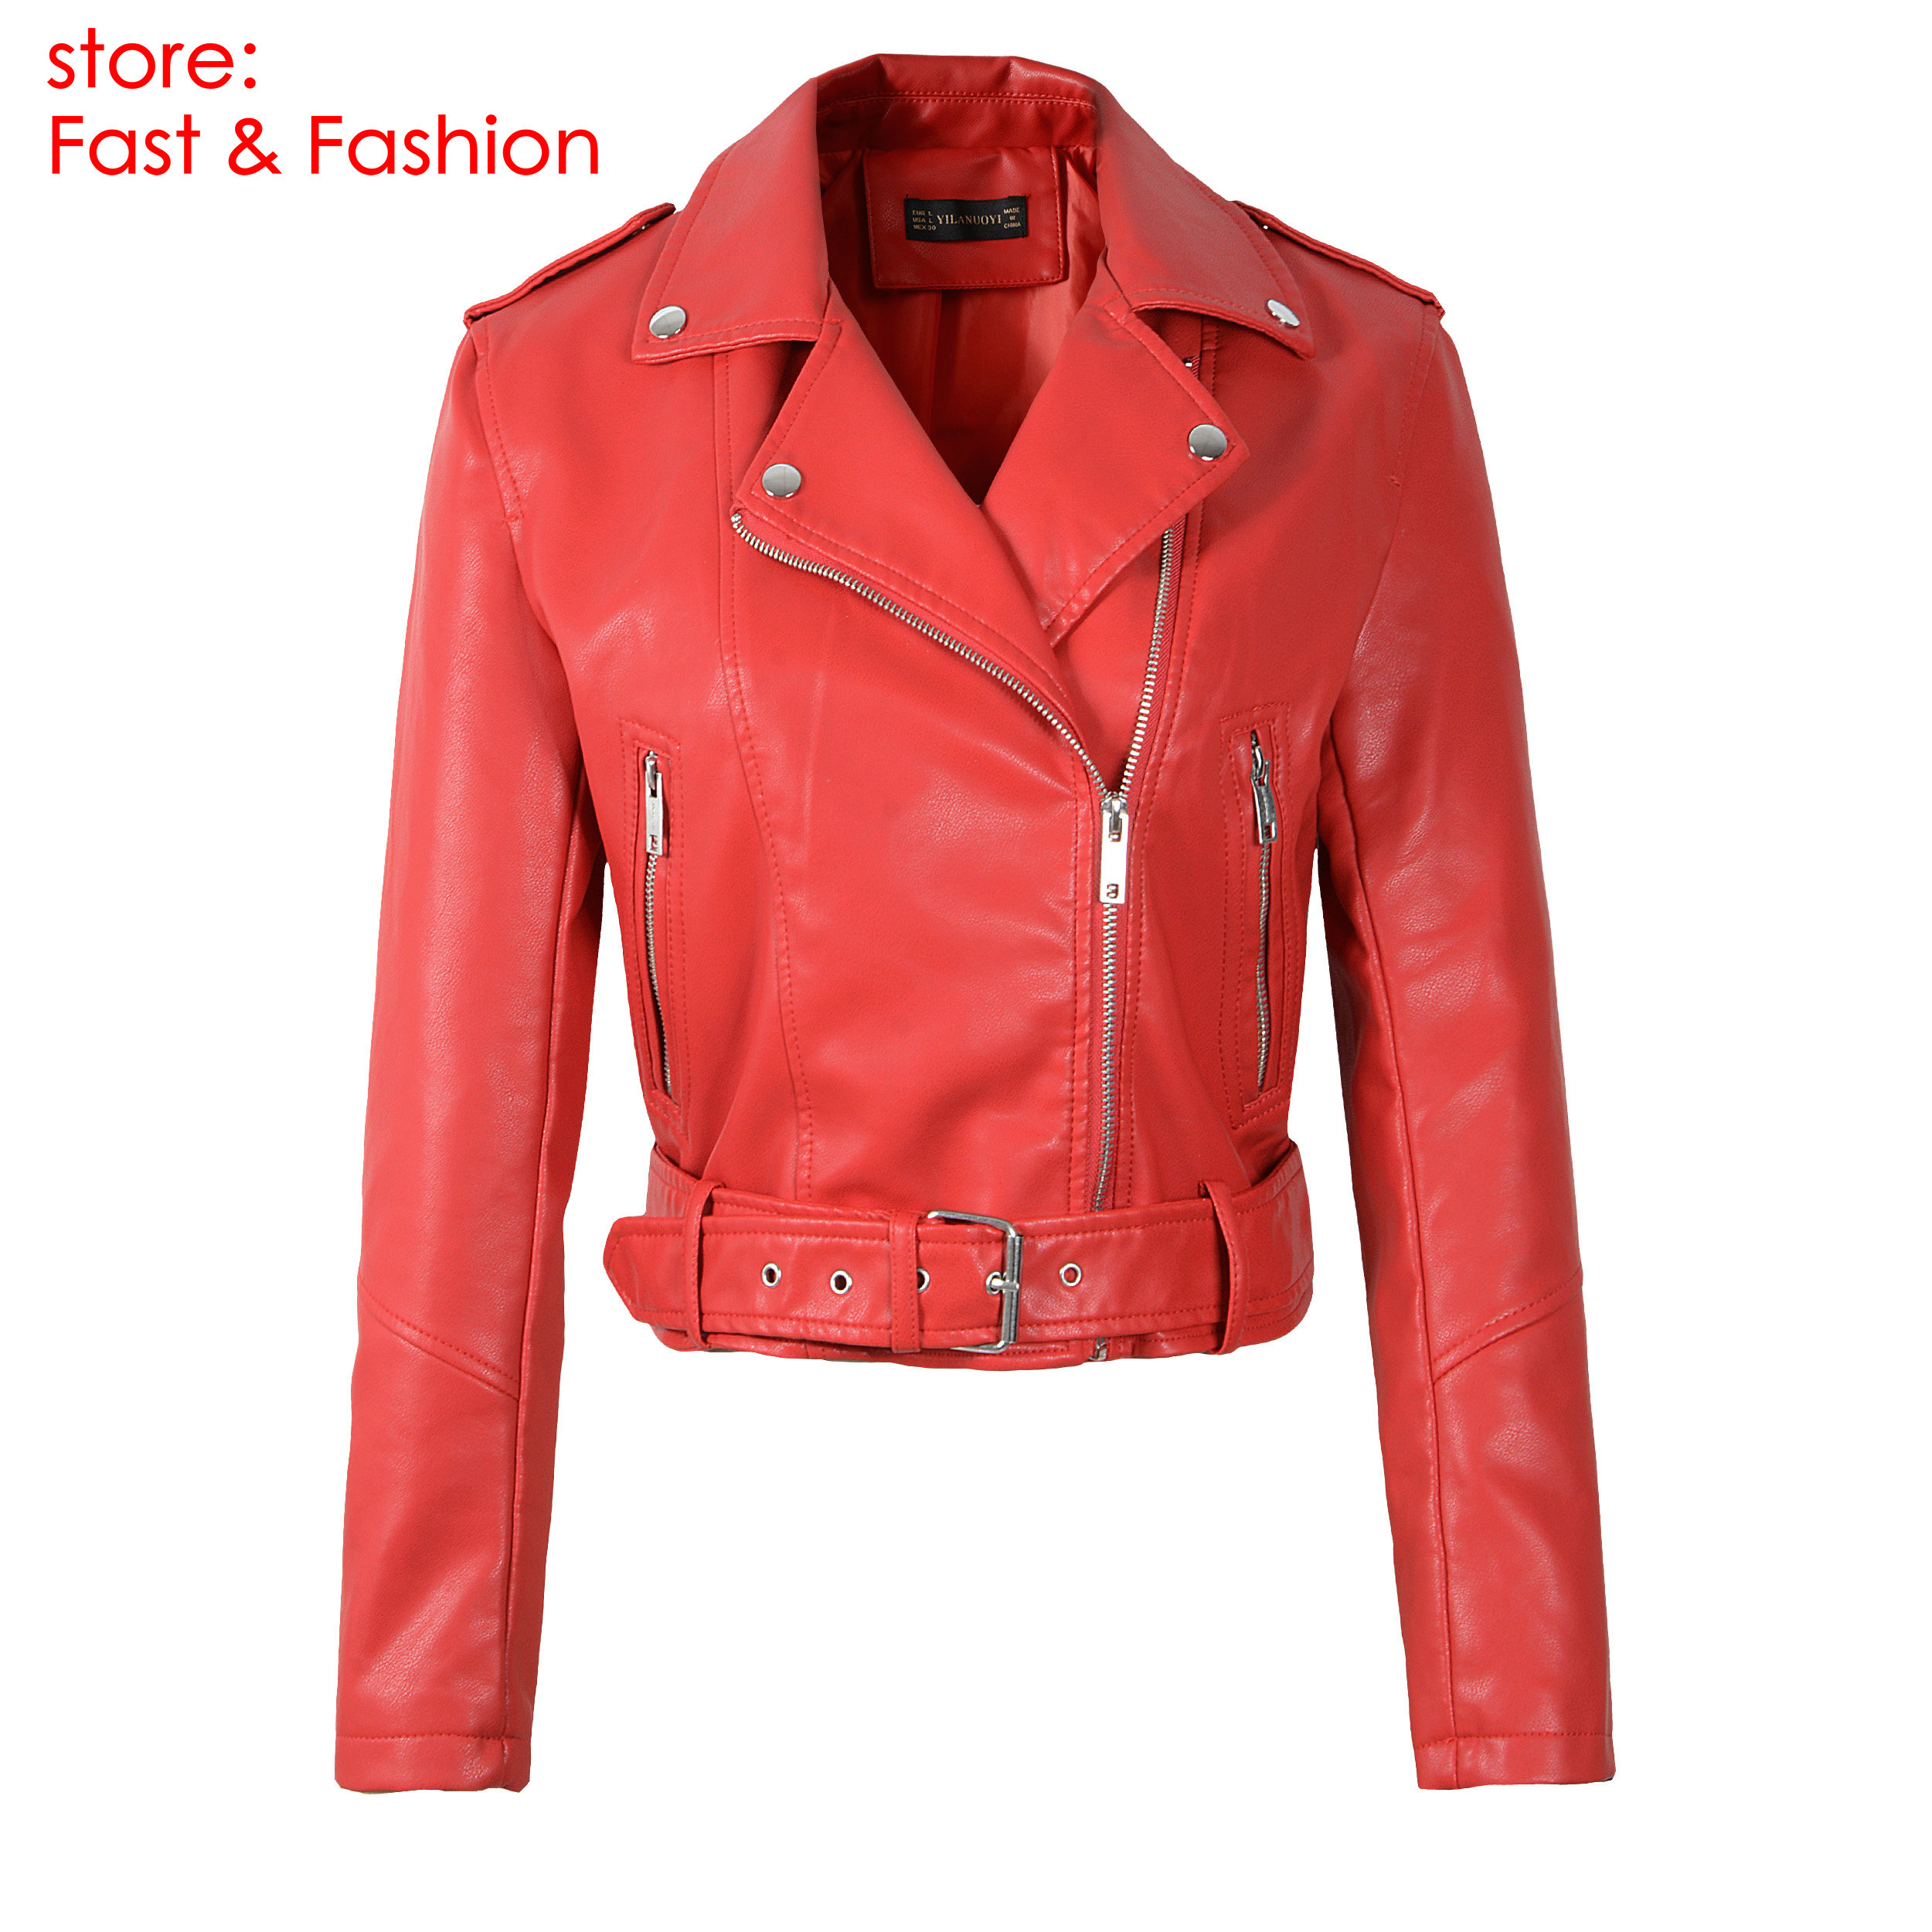 Generic Womens Fashion Lapel Motorcycle Faux Leather Short Jacket with Zipper Black XS